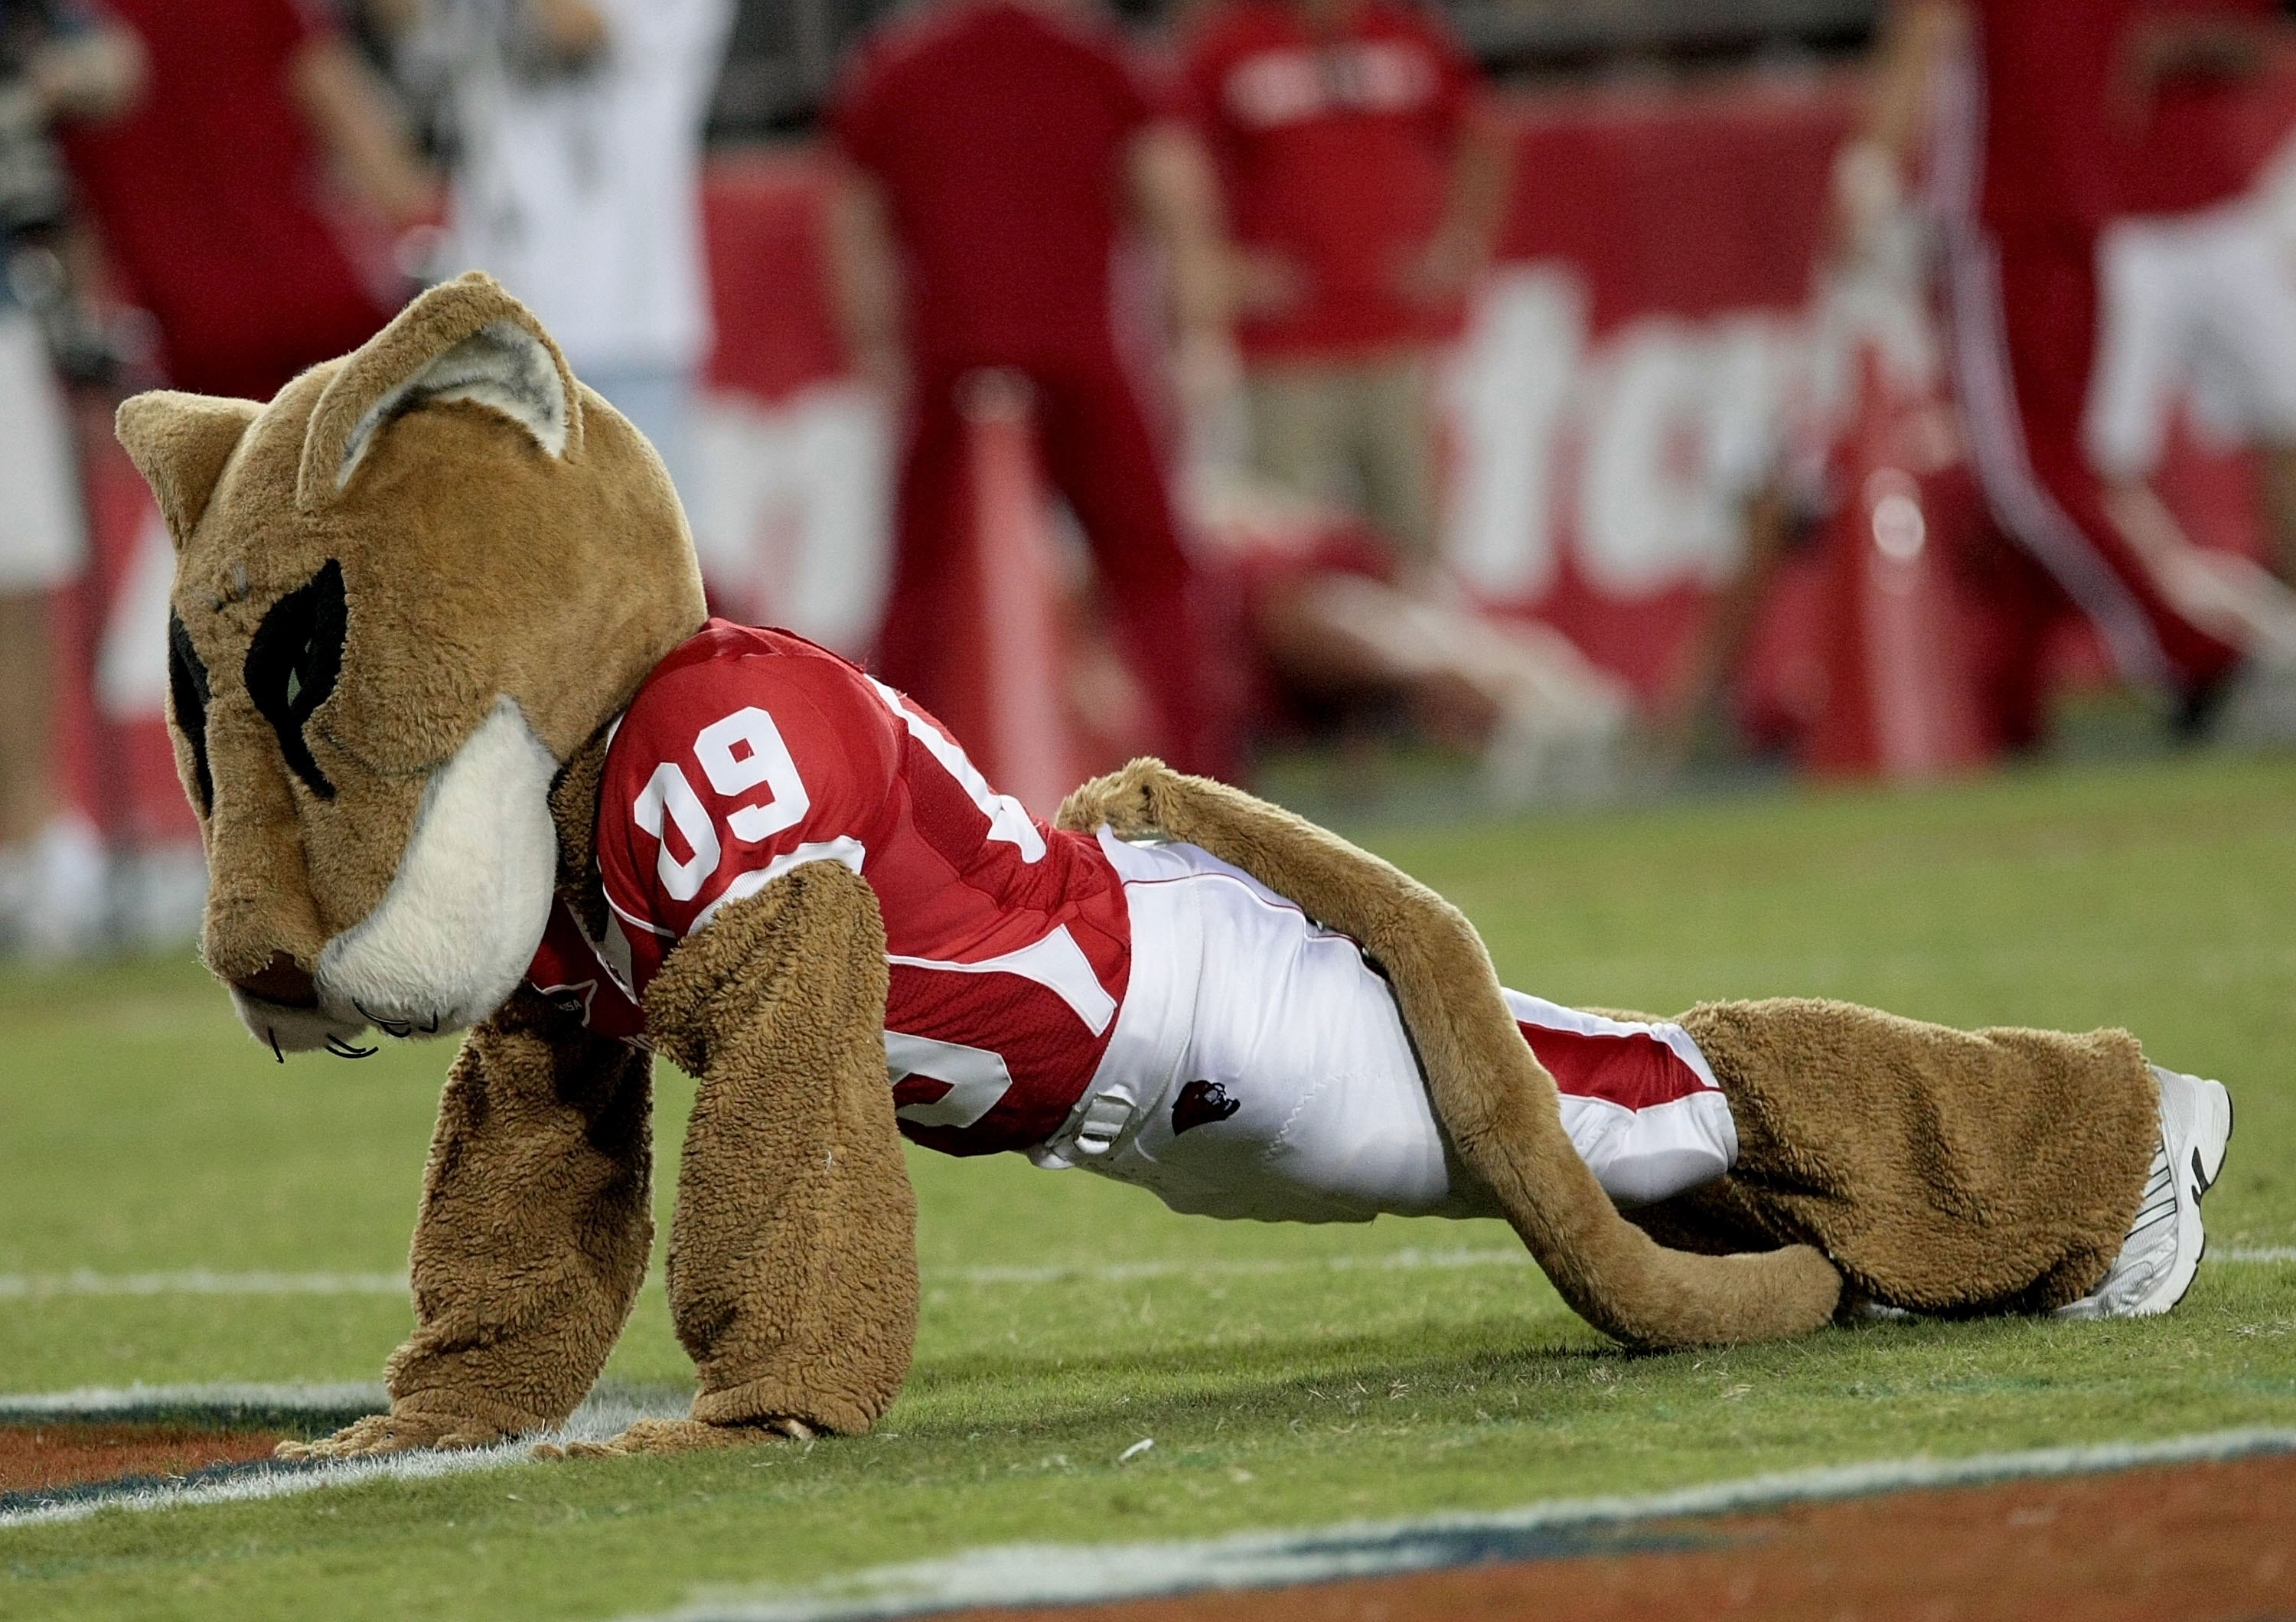 HOUSTON - SEPTEMBER 26: University of Houston mascot 'Sasha' does pushups after the Houston Cougars scored against  the Texas Tech Red Raiders at Robertson Stadium on September 26, 2009 in Houston, Texas.  (Photo by Thomas B. Shea/Getty Images)